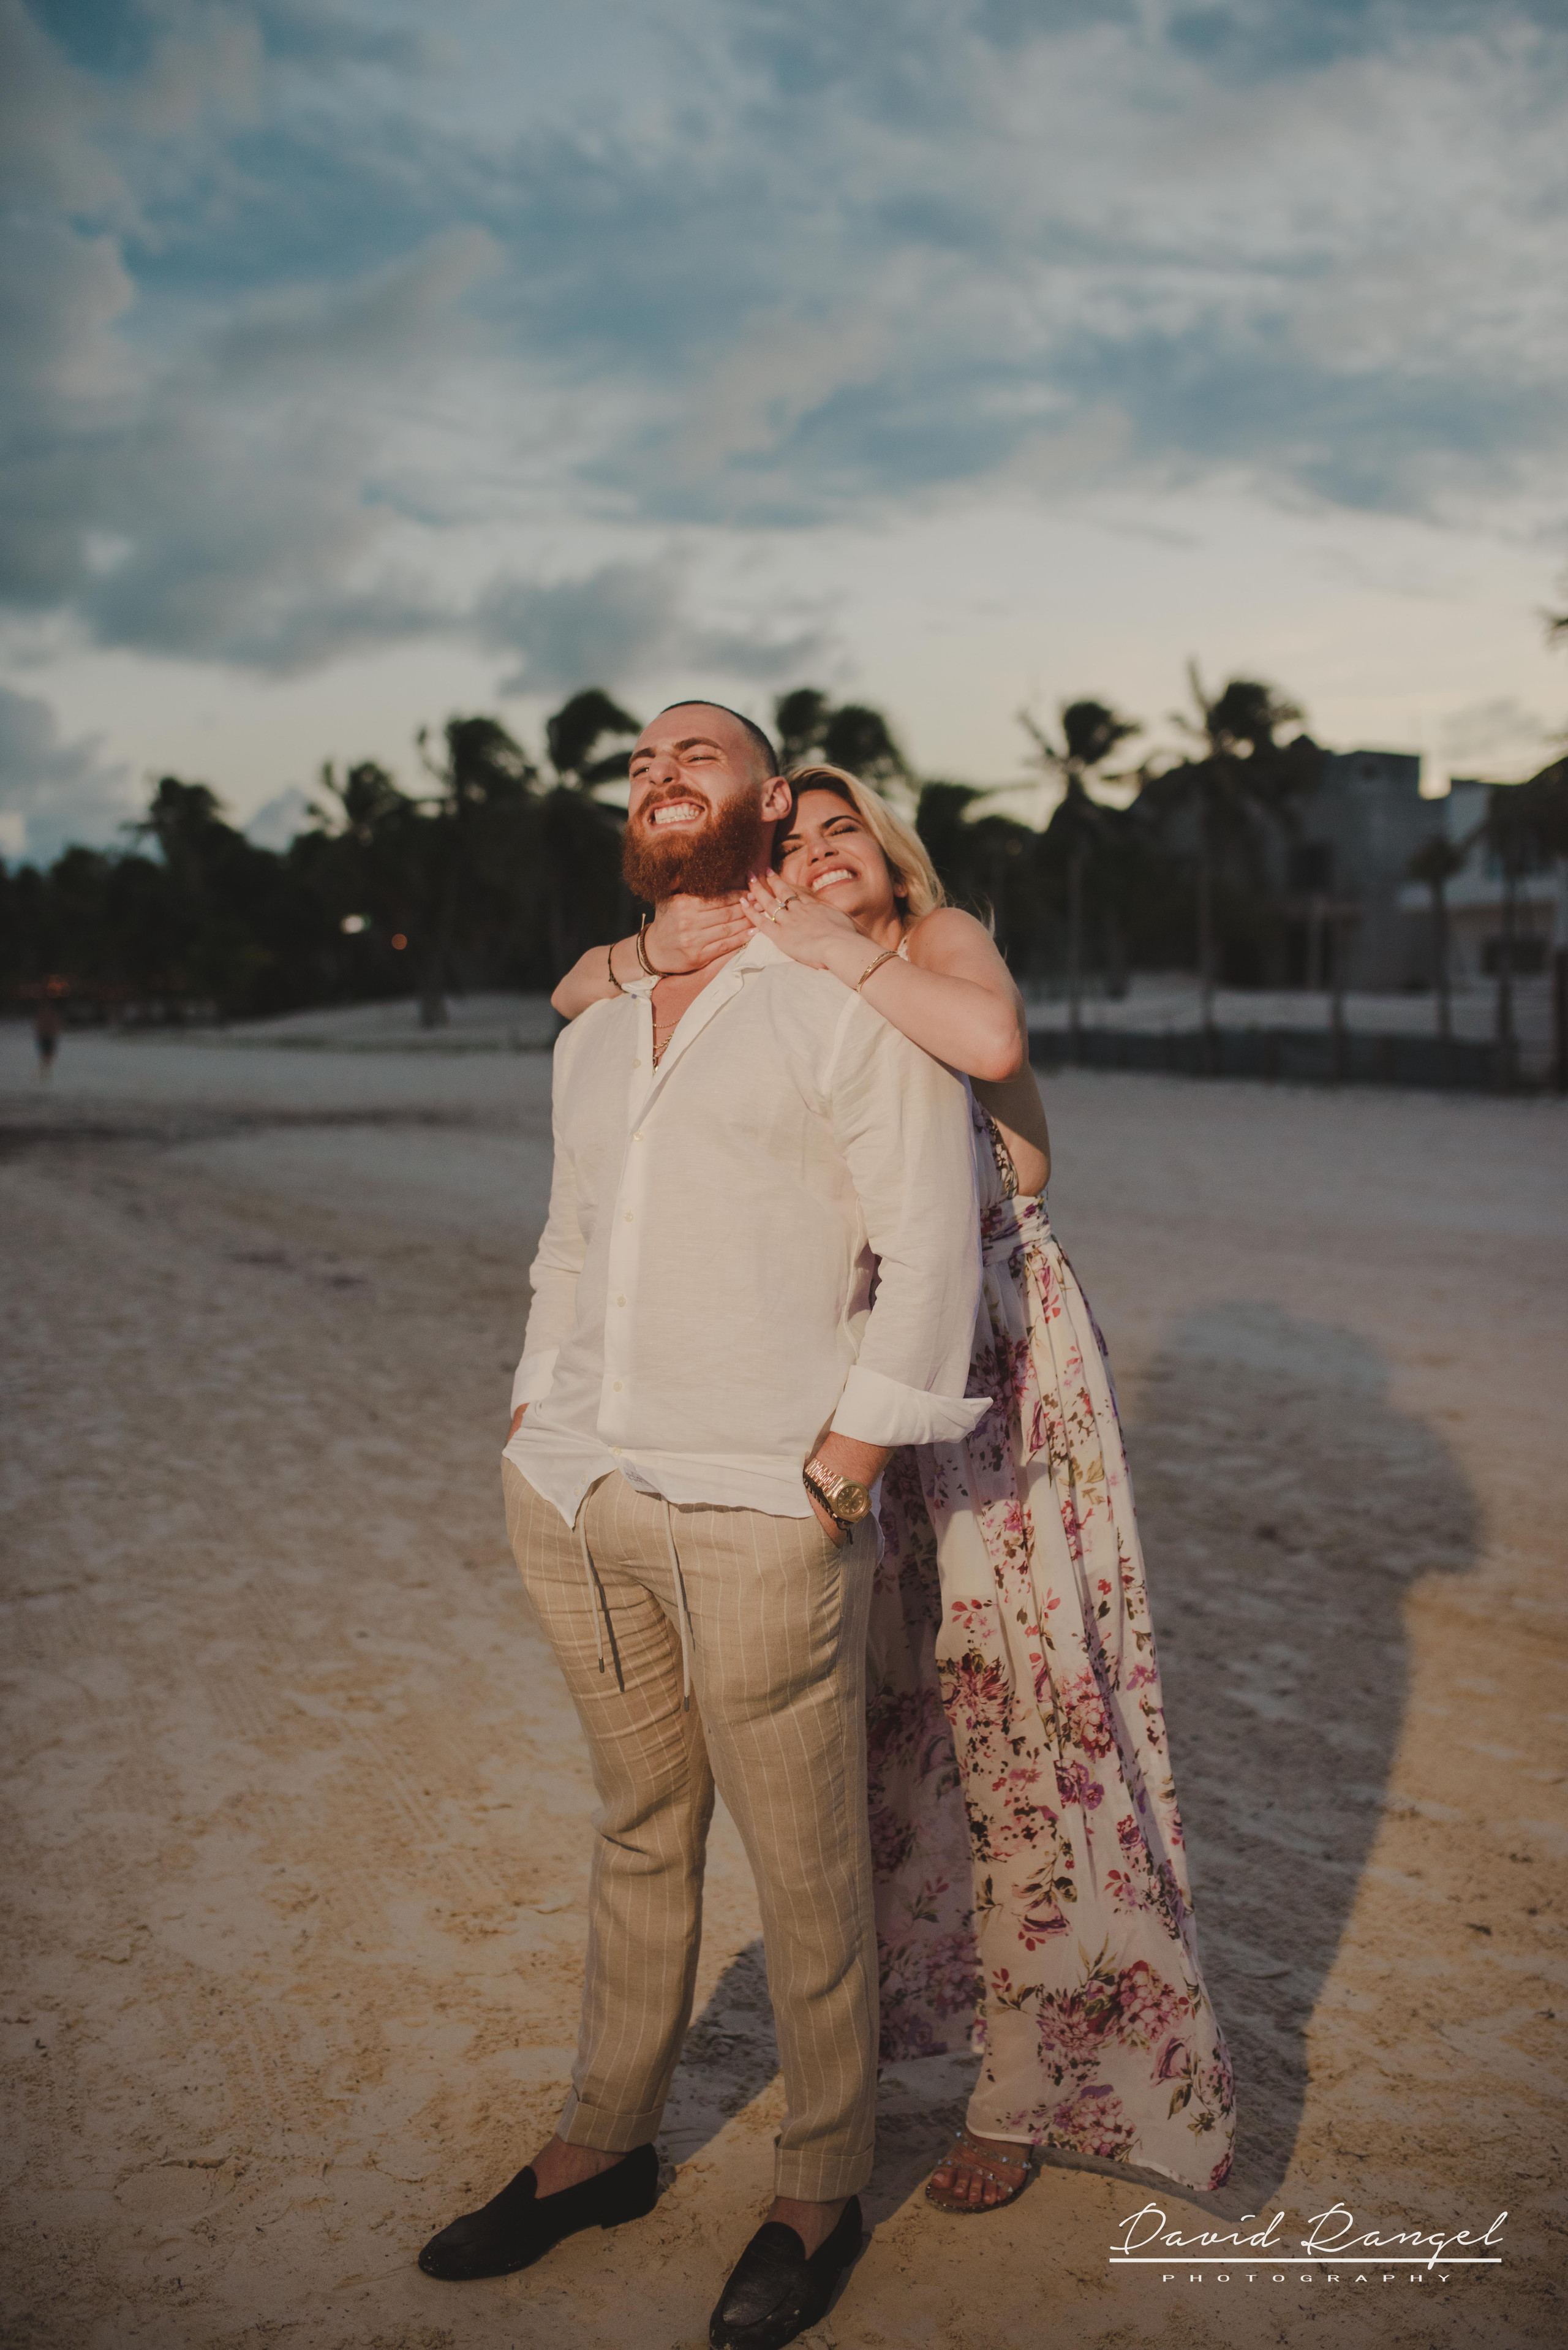 engagement+session+photo+shot+romantic+sorprise+beach+caribe+sand+mexico+tulum+casa+malca+hotel+boutique+girl+man+union+she+say+yes+ring+propose